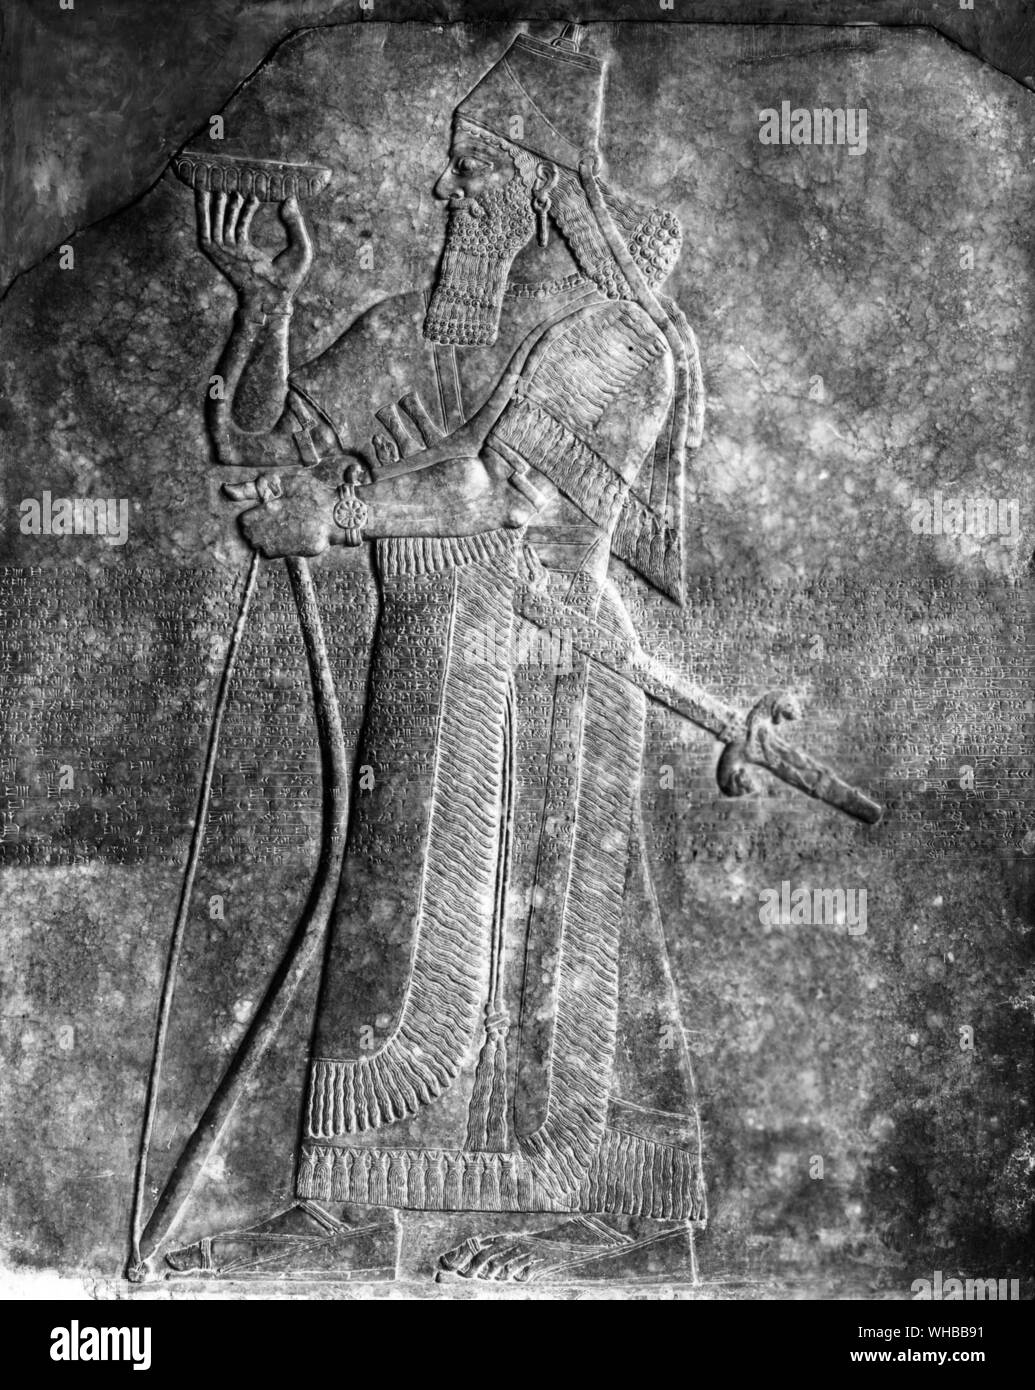 assyrien coutumes datant